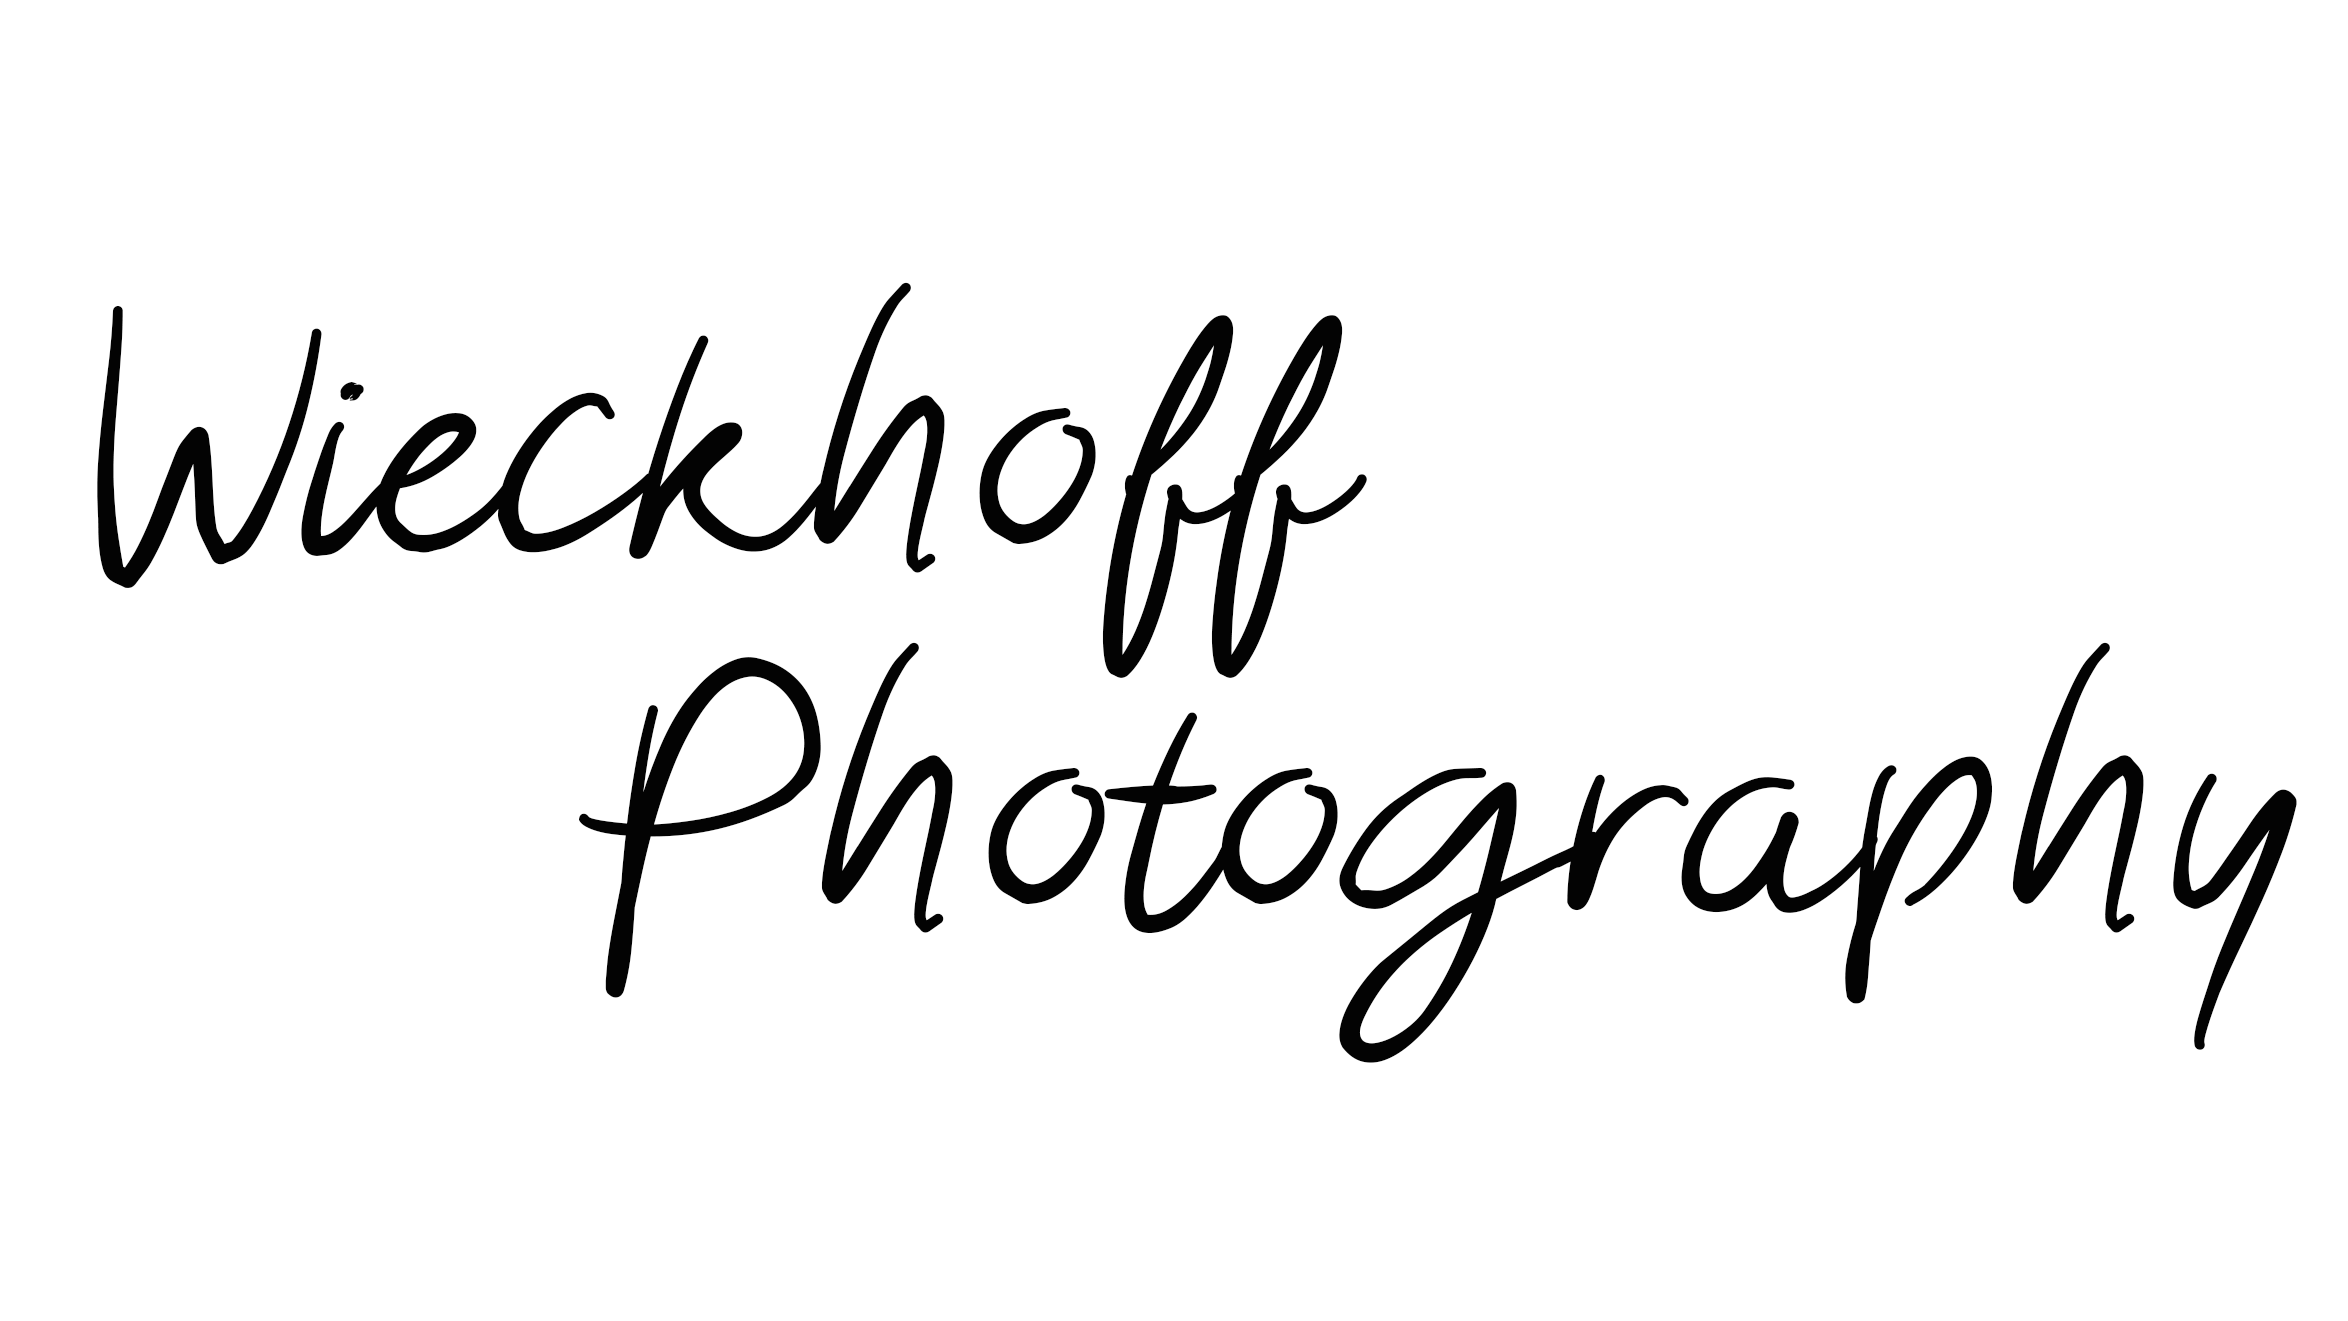 Wieckhoff Photography